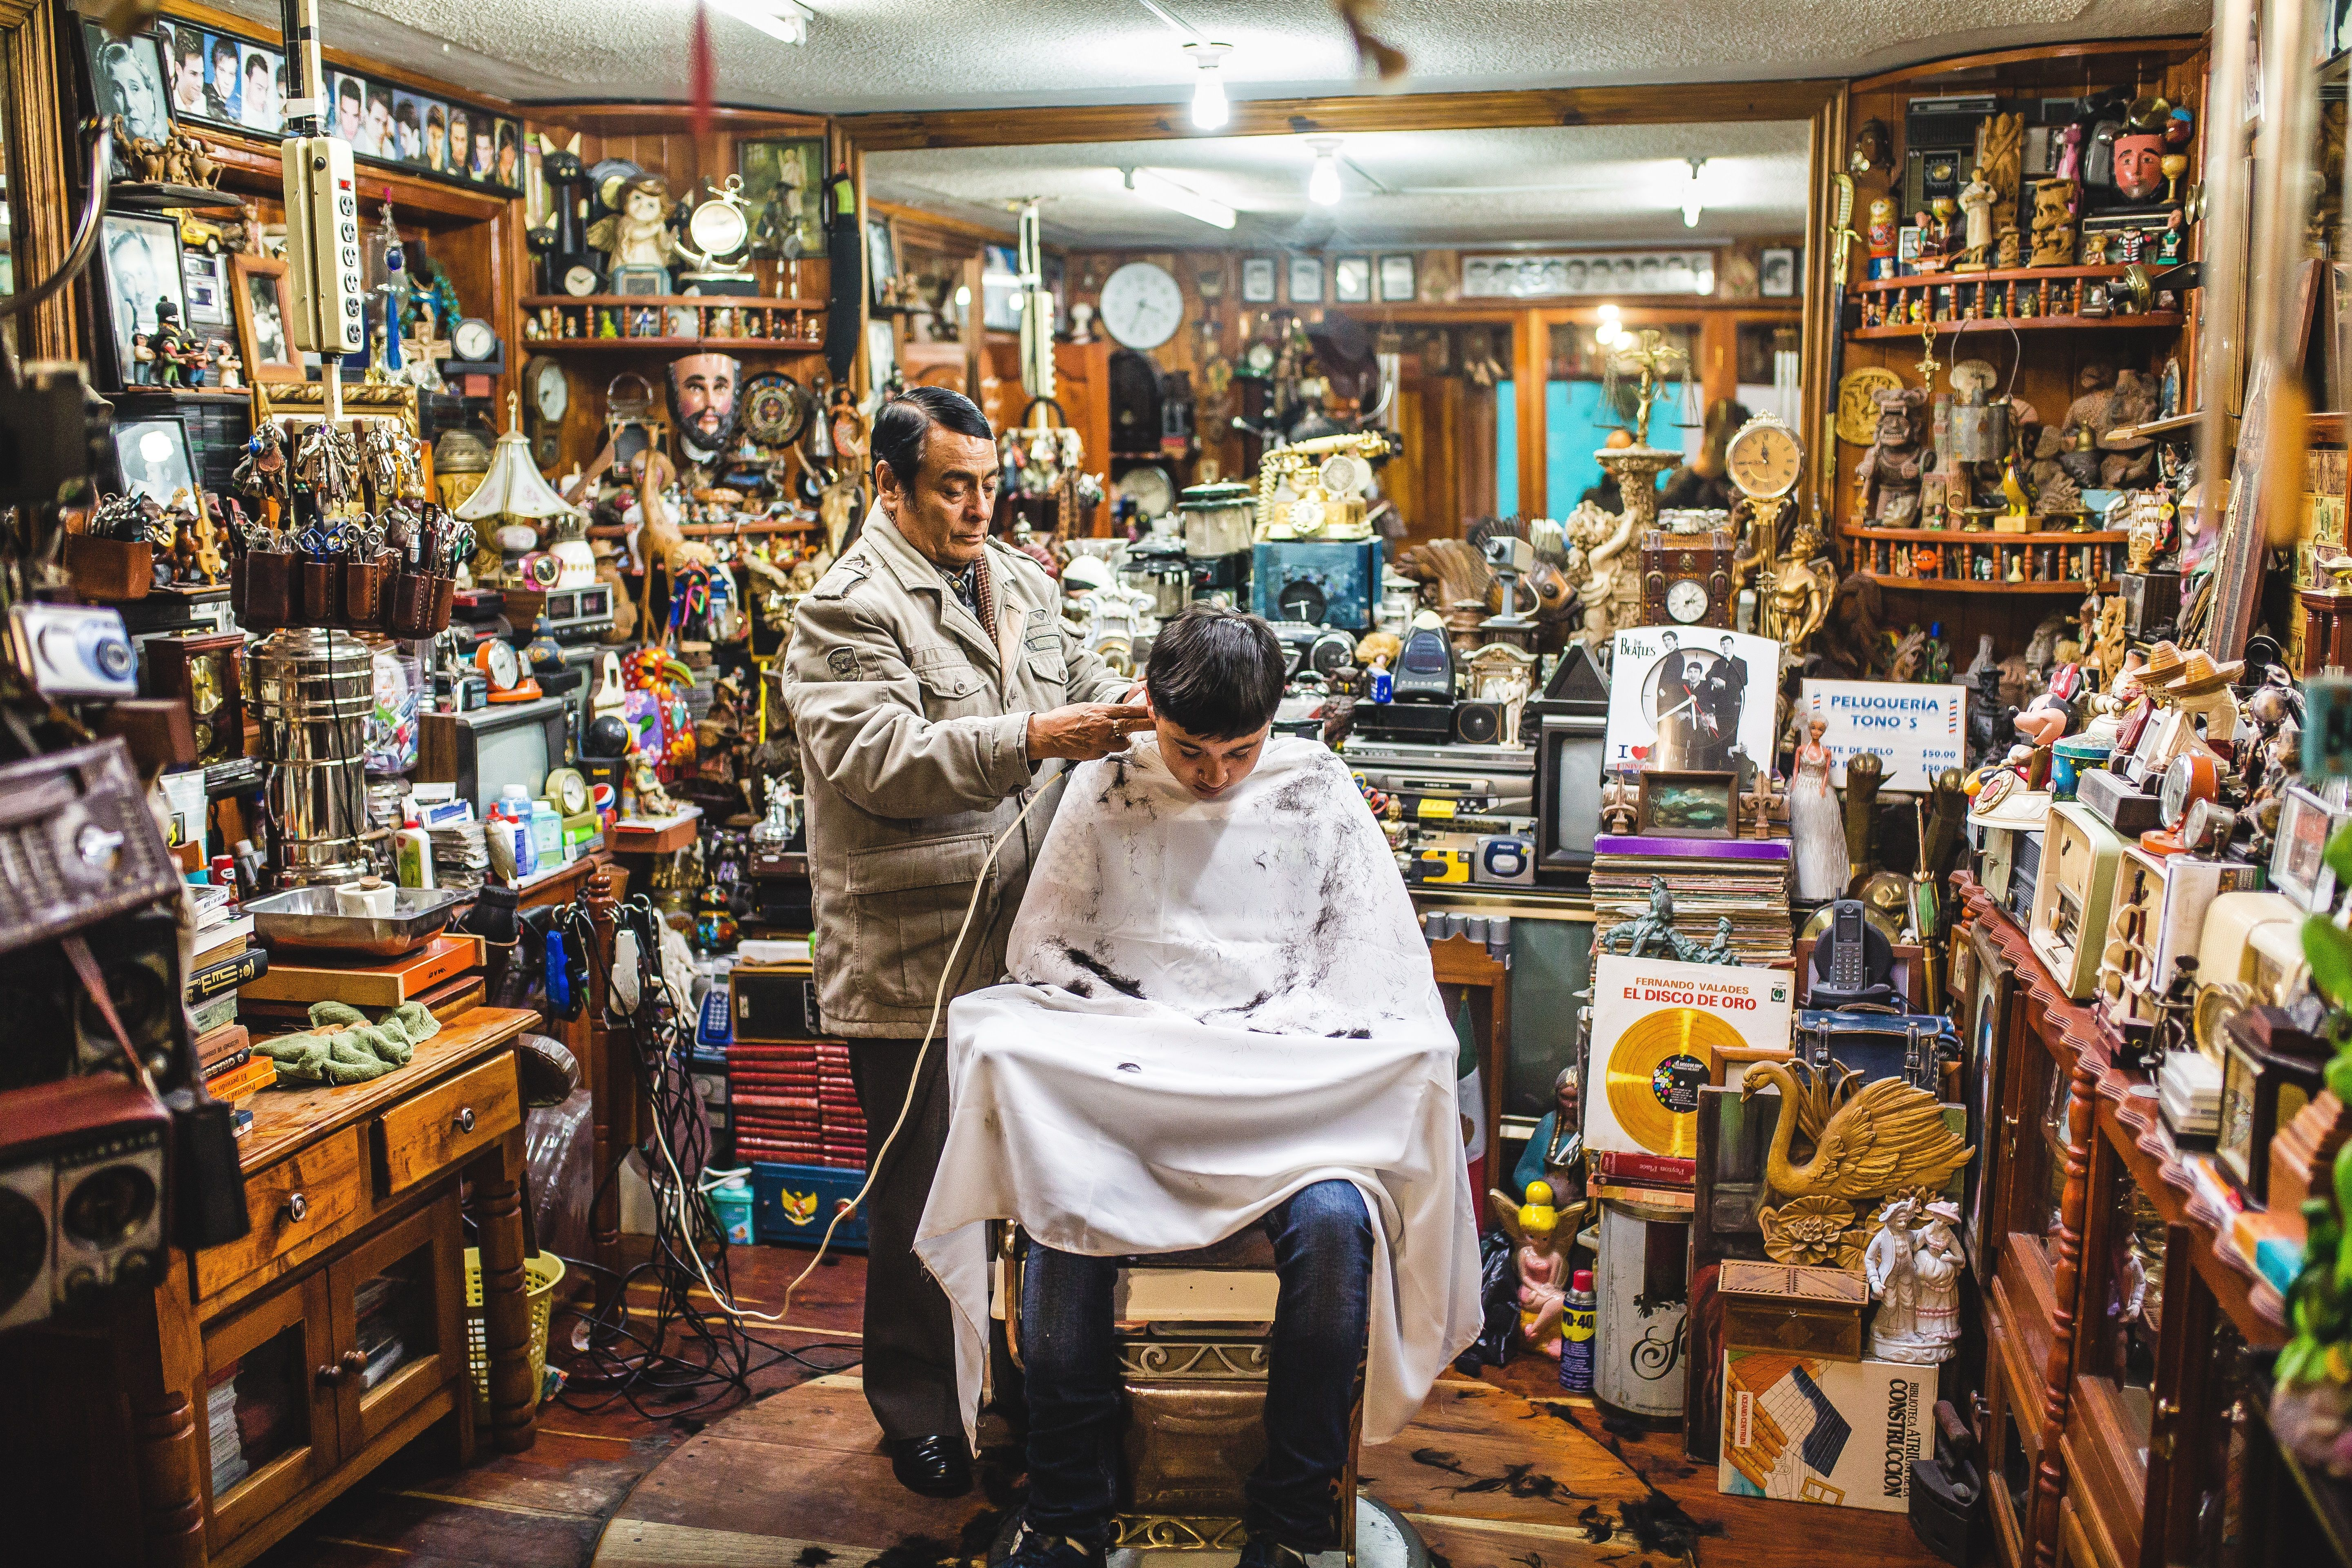 A barber cuts a young man's hair in his shop in Mexico. He has worked out of the same shop for more than 40 years, collecting interesting and unique items for his collection along the way.